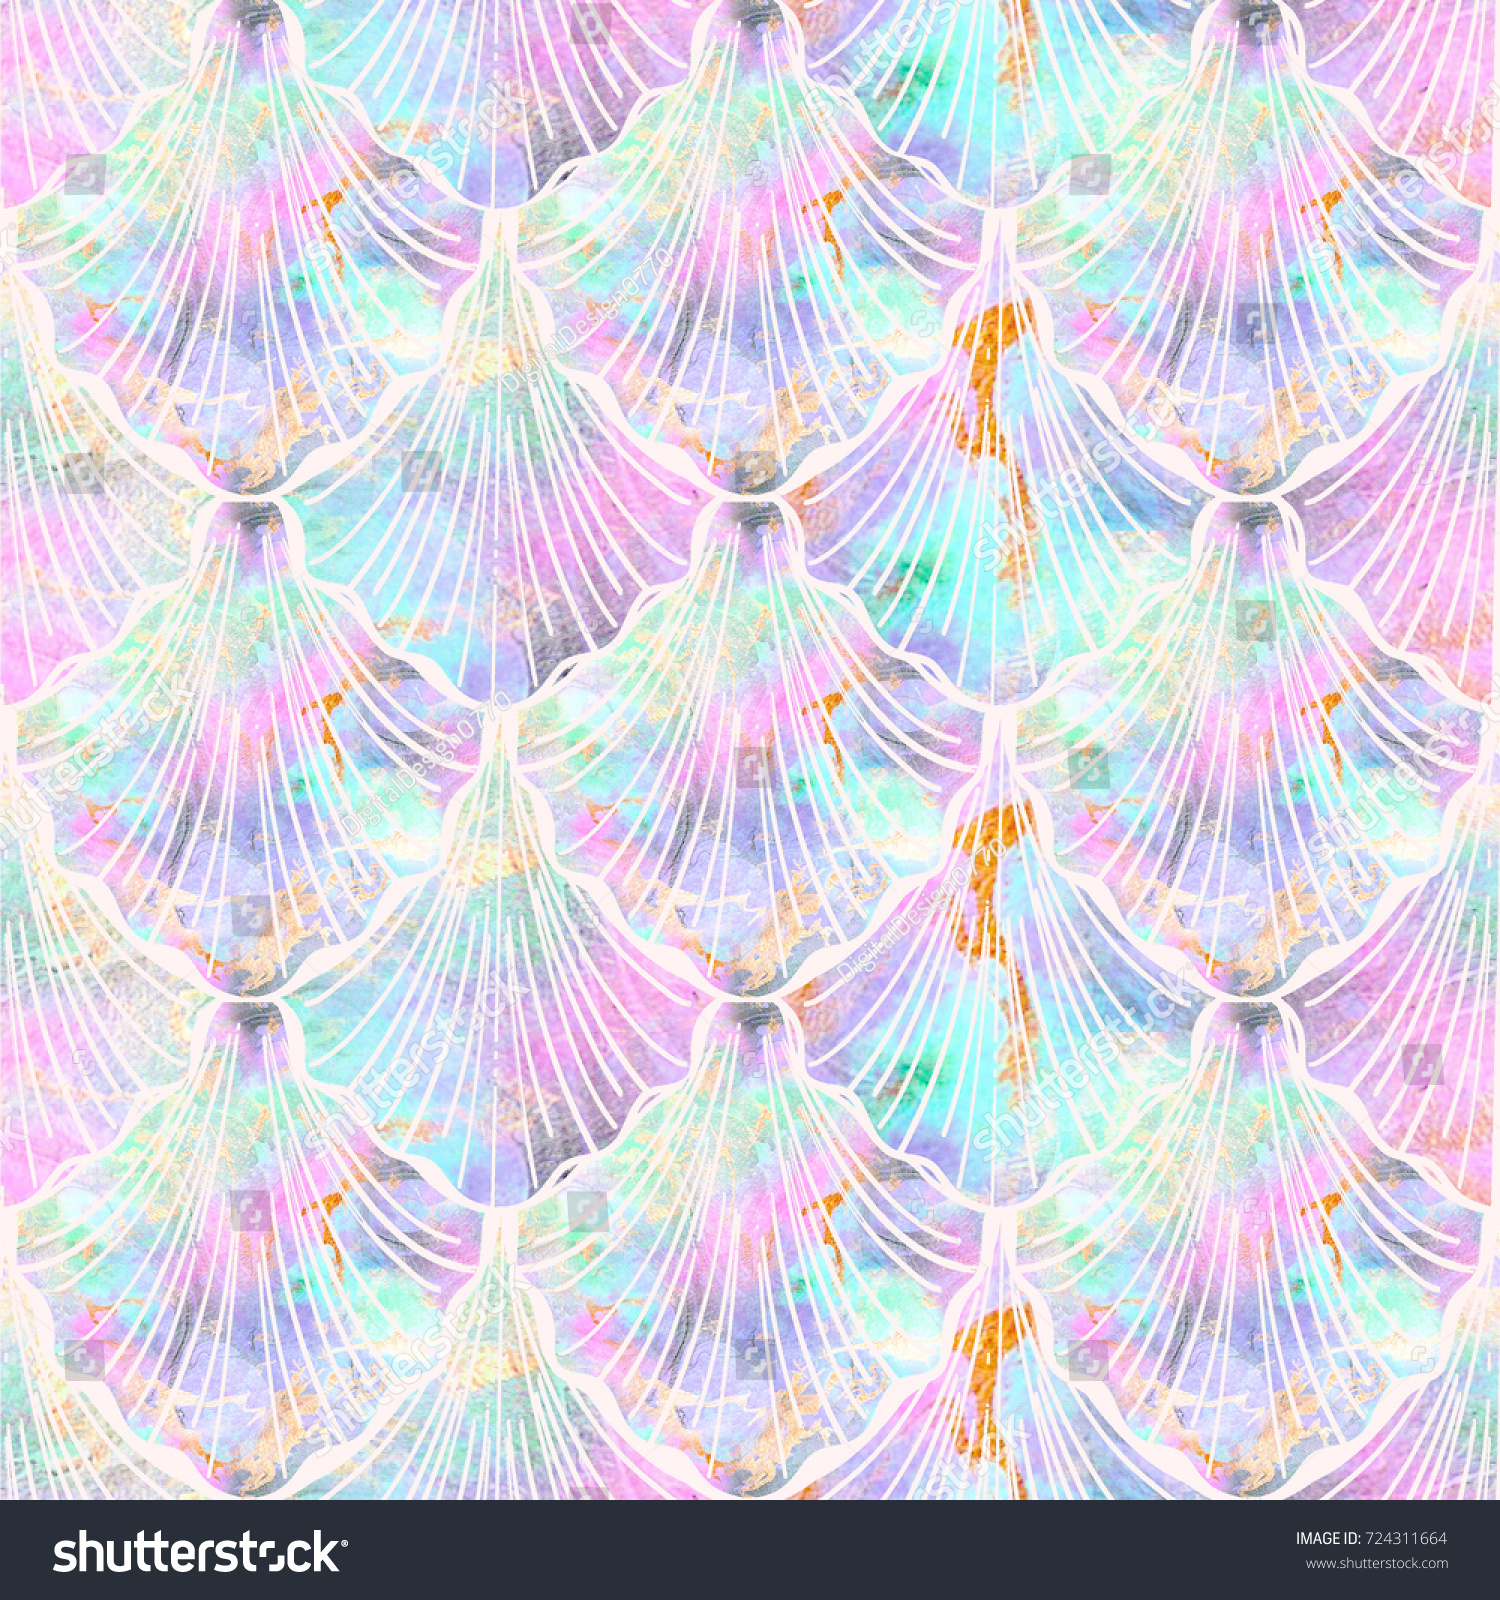 Popular Wallpaper Marble Unicorn - stock-photo-pastel-marble-unicorn-print-with-mermaid-scales-overlay-seamless-pattern-in-repeat-724311664  Gallery_784129.jpg